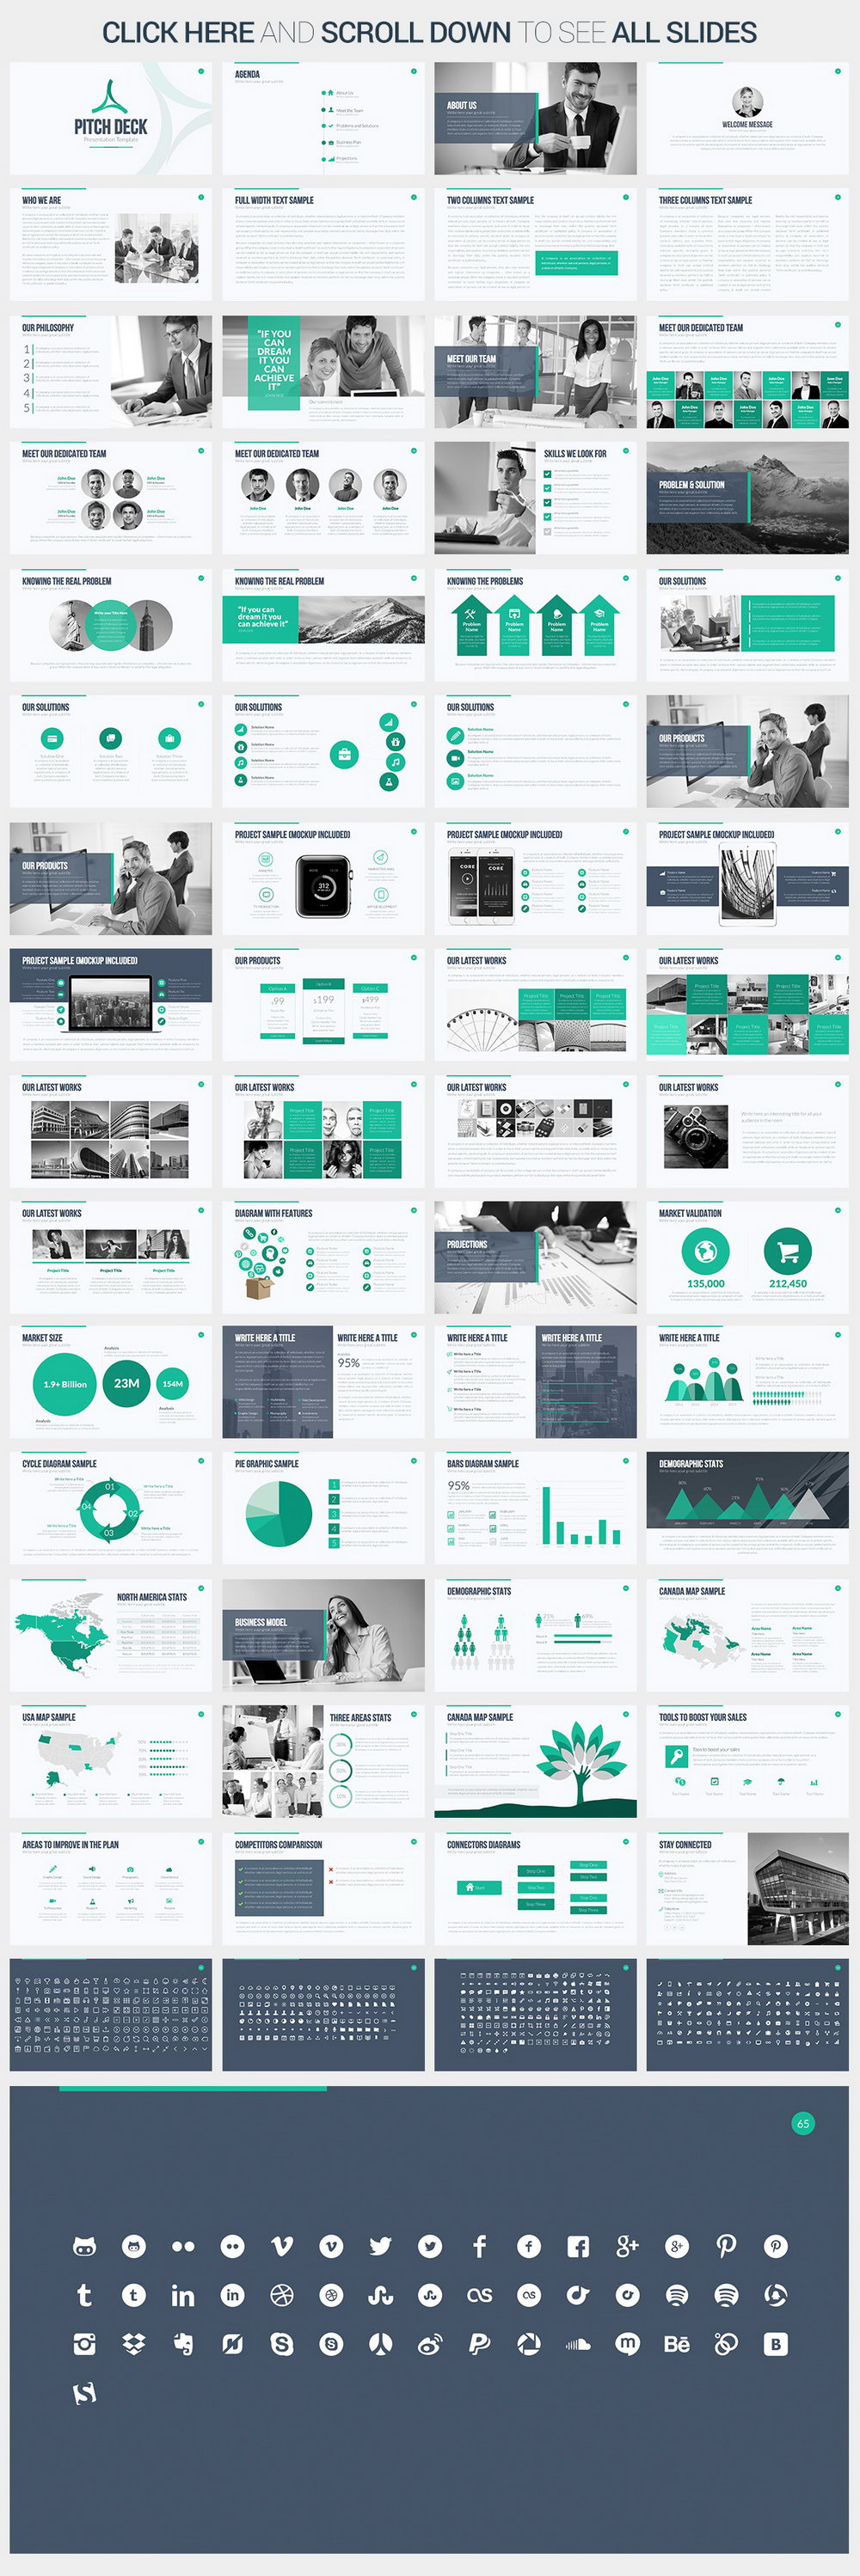 Powerpoint Pitch Deck Template Free Download